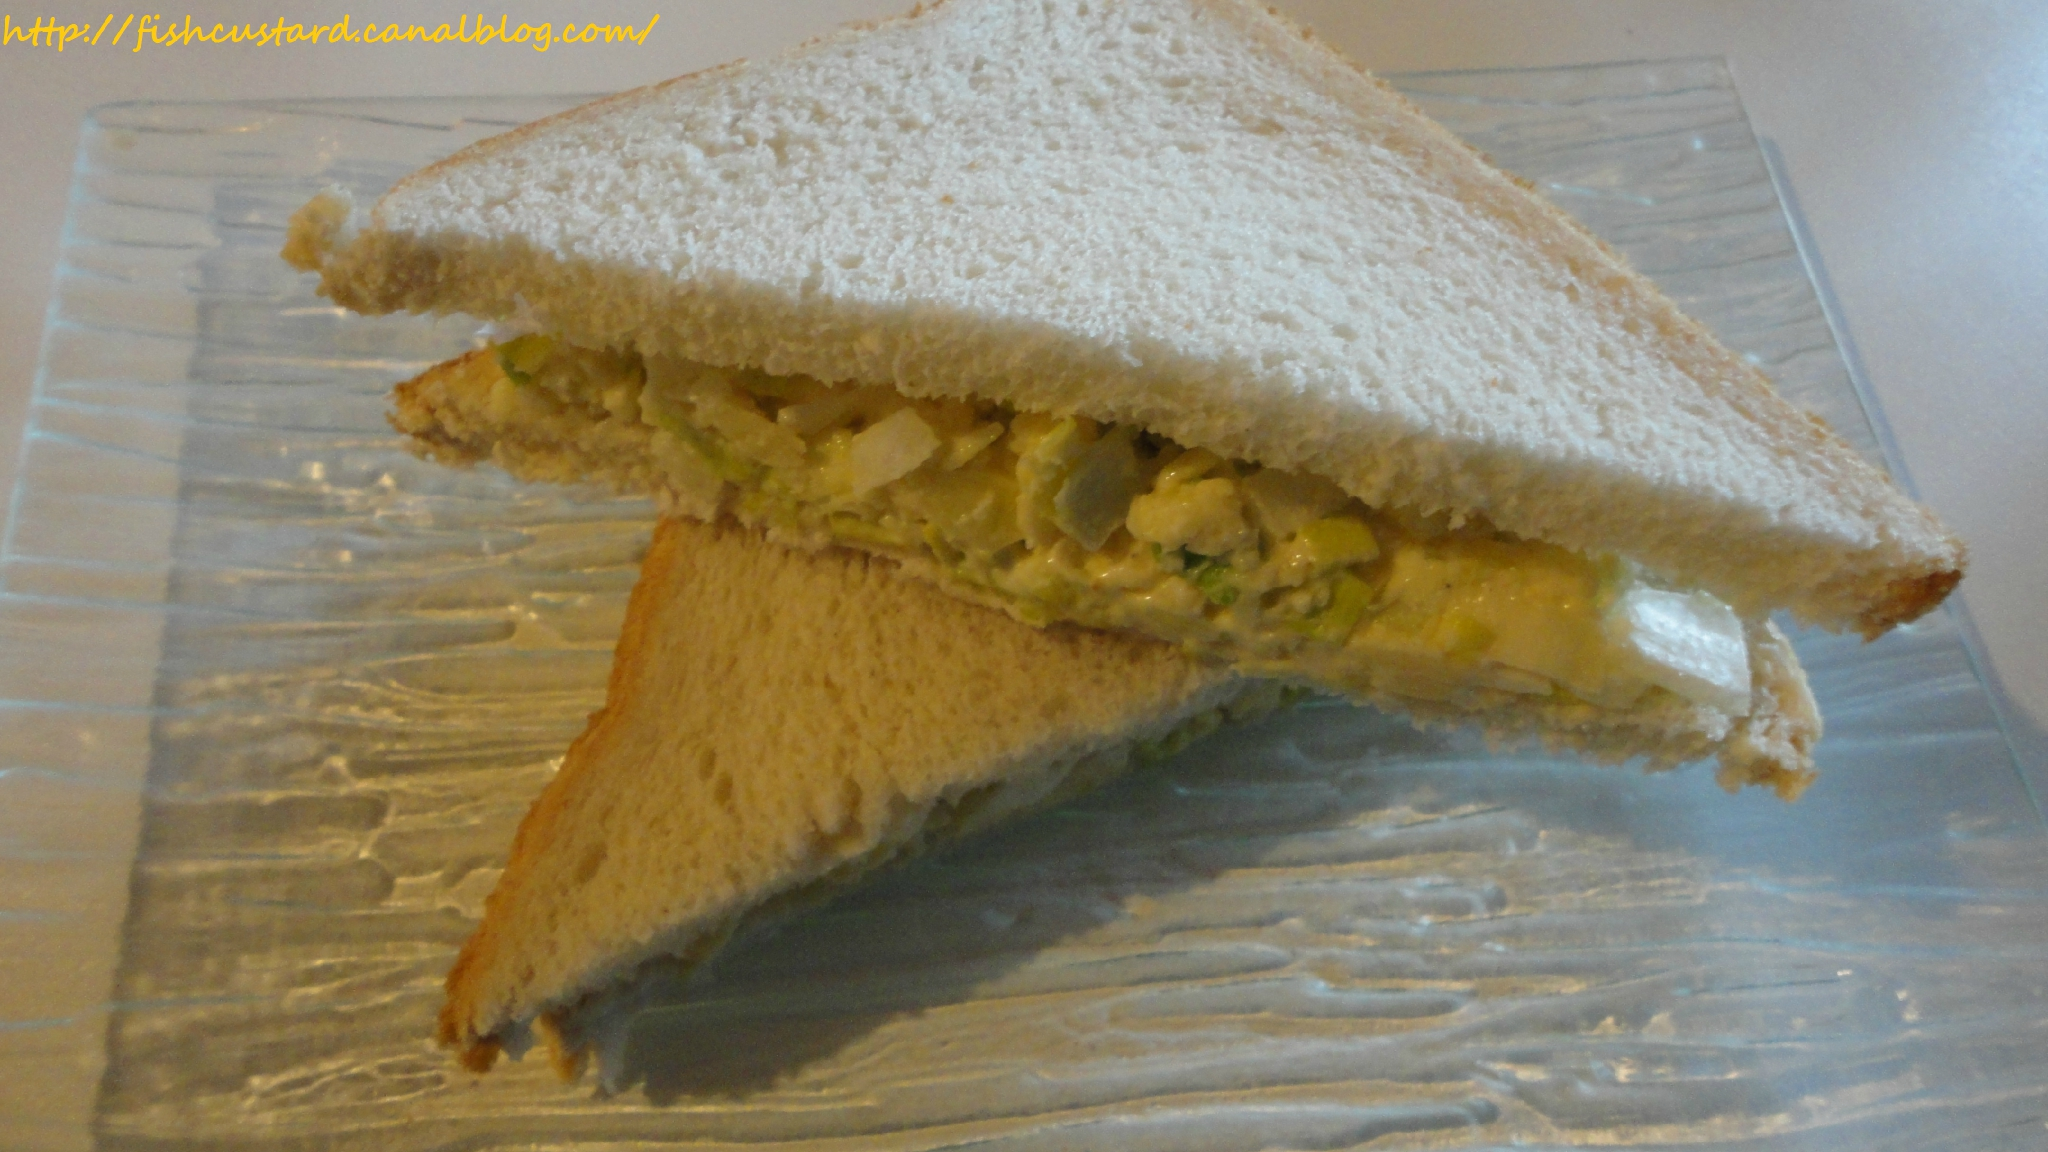 Cheese and Onion sandwich